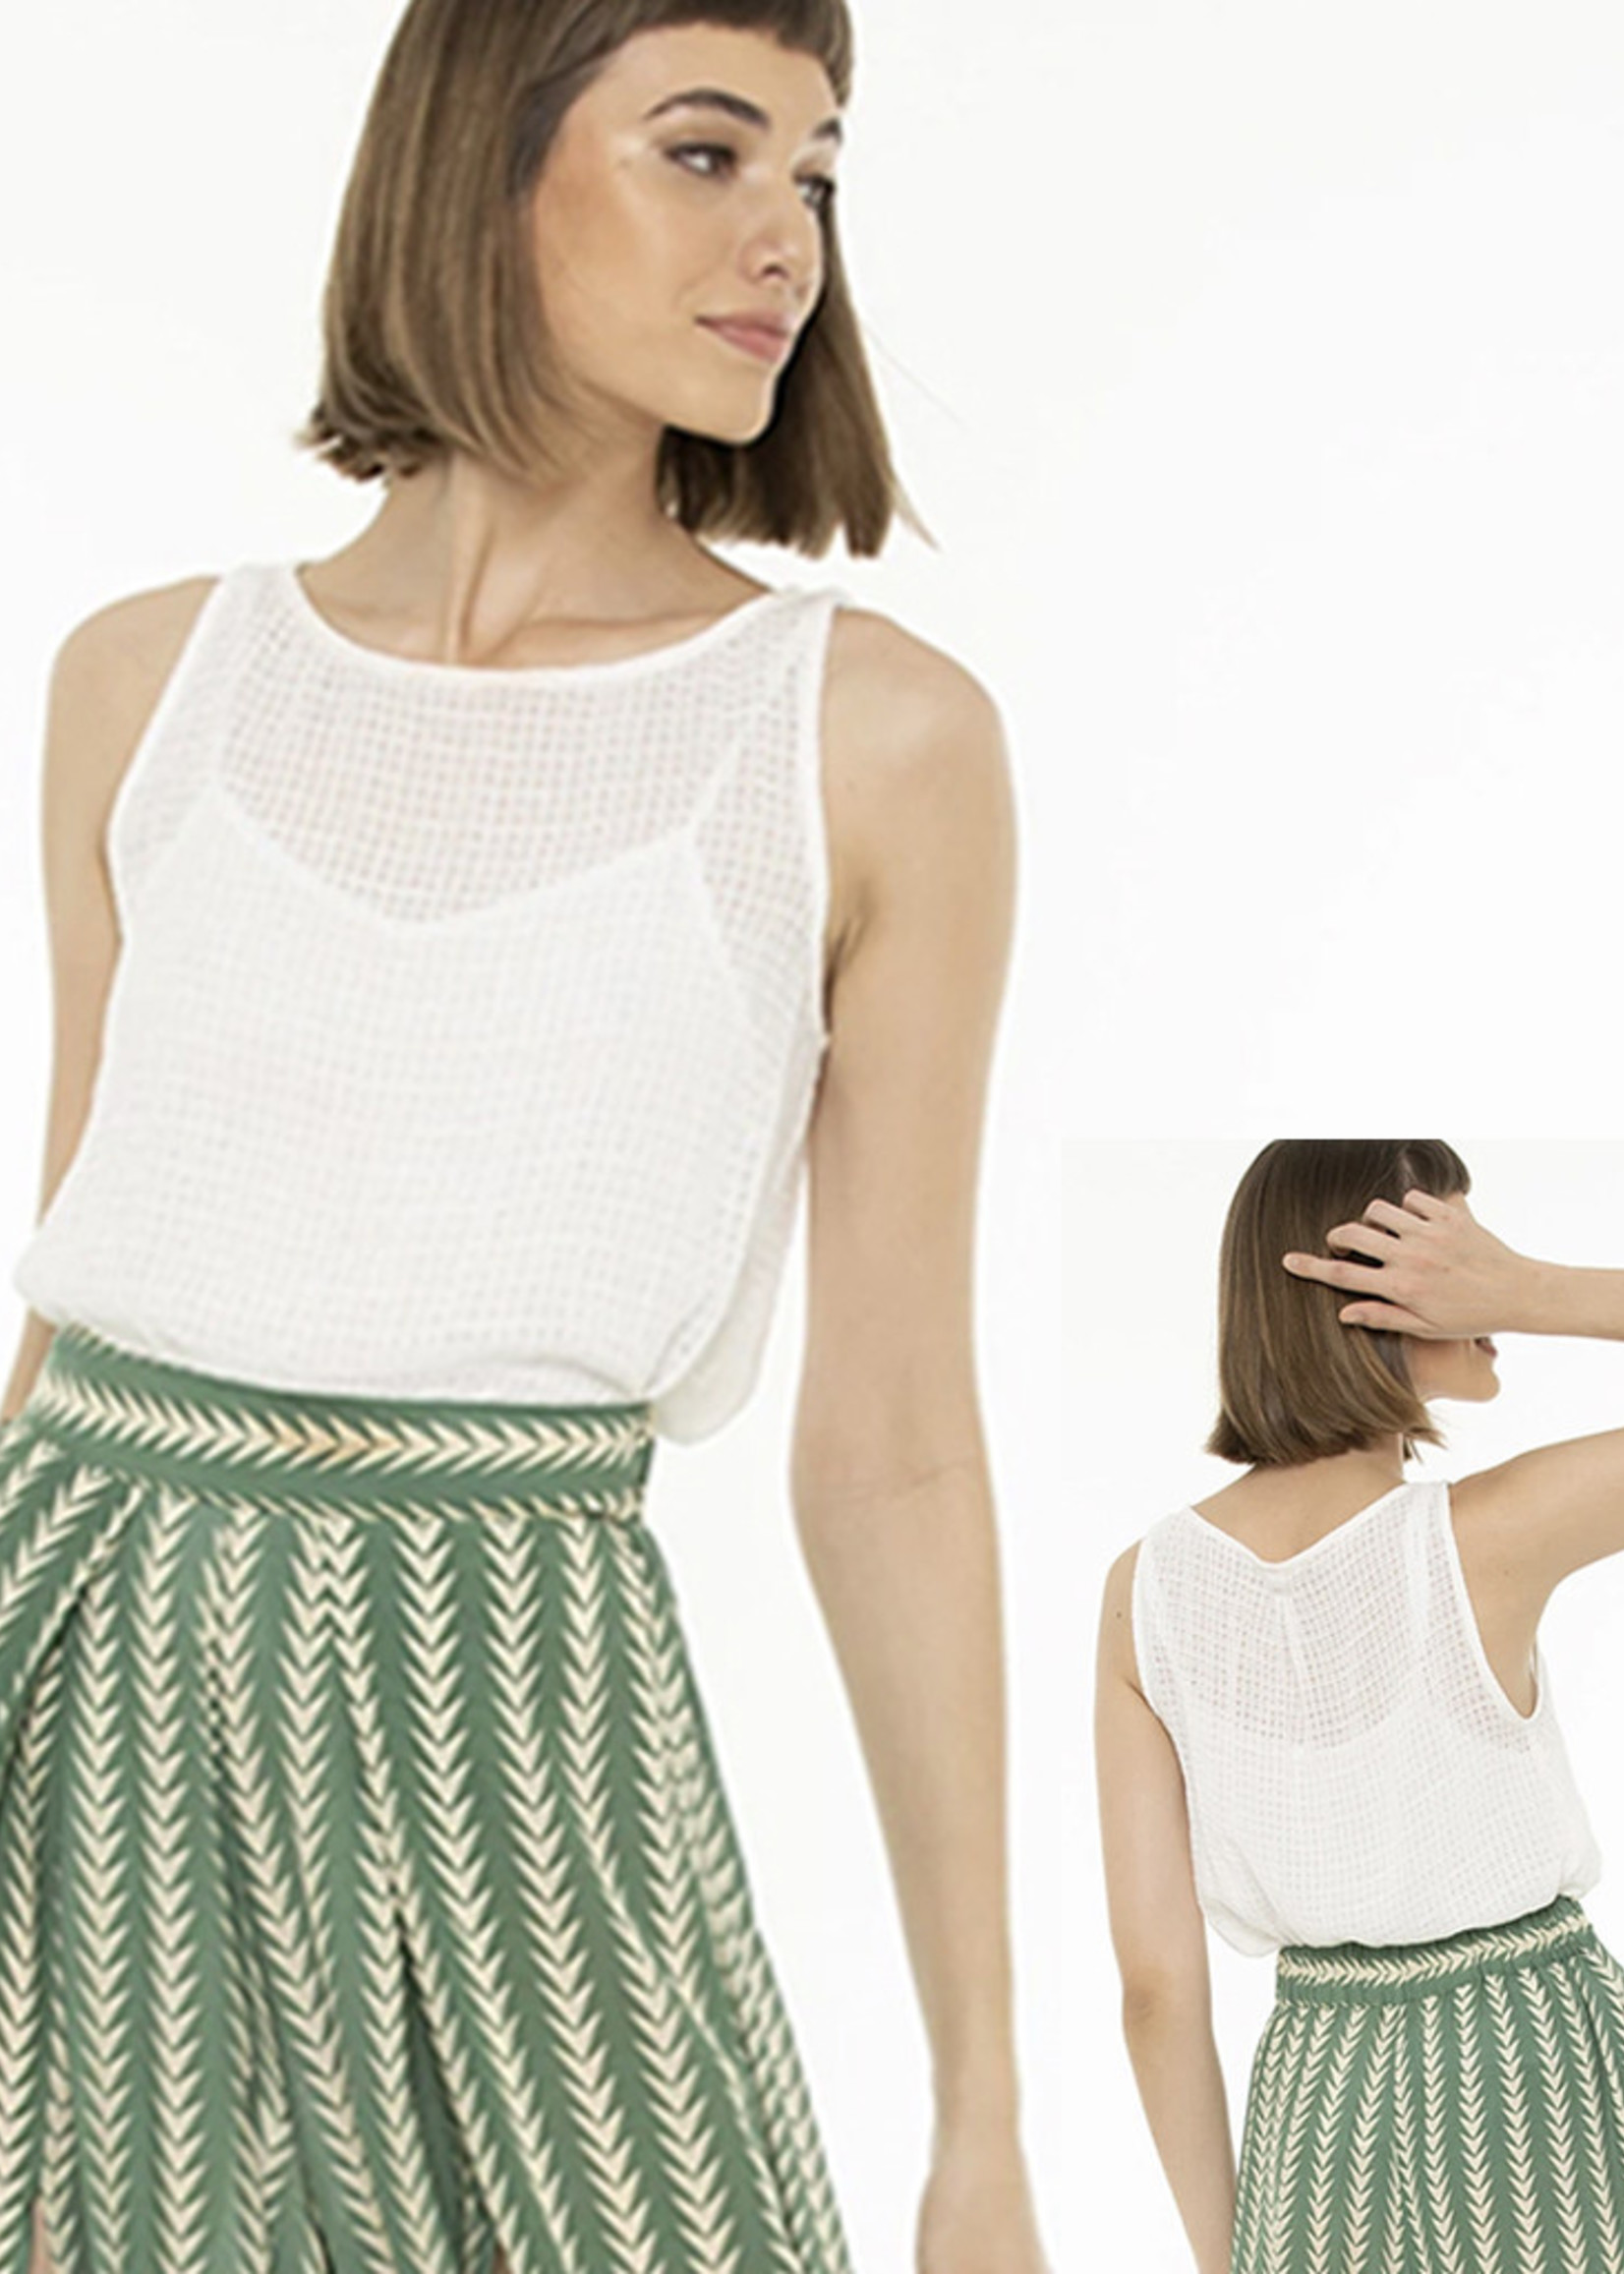 Totem Mual Blouse in White